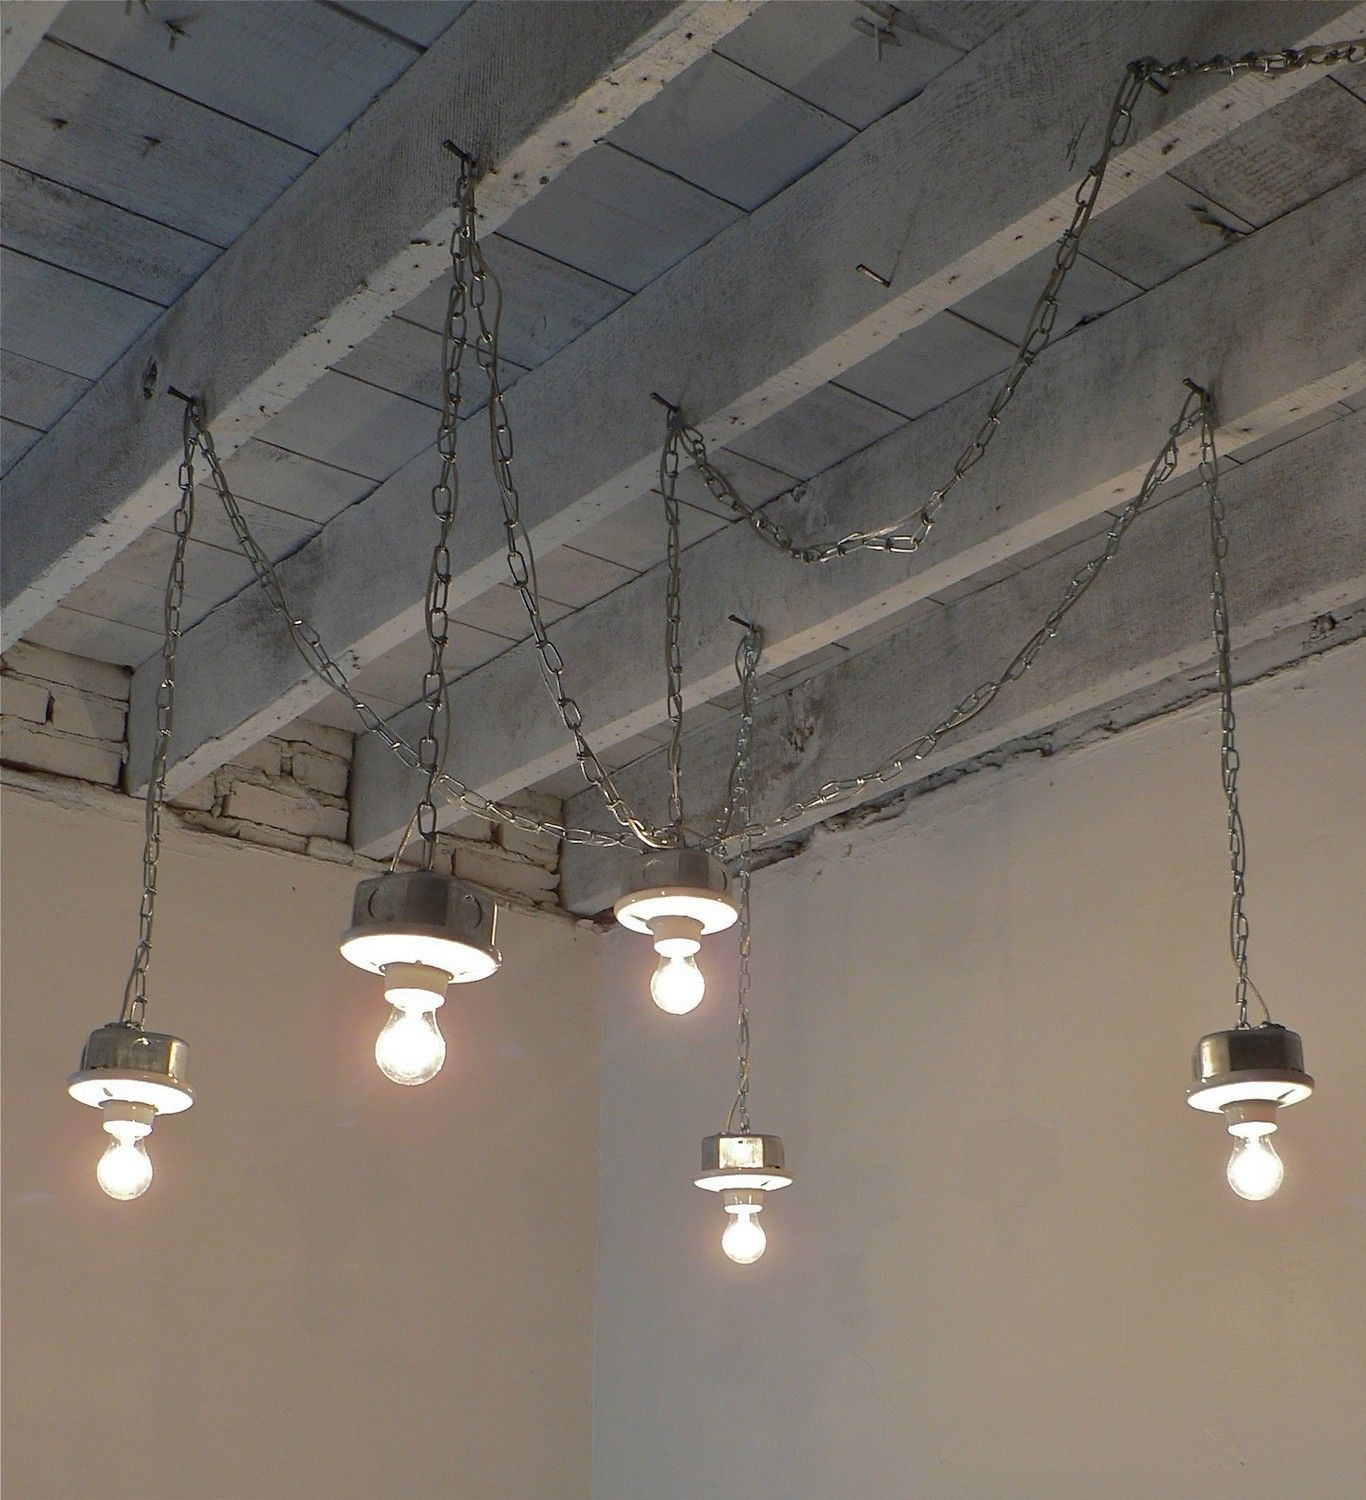 Rain handcrafted 5 light plug in galvanized interior industrial rain handcrafted plug in galvanized interior industrialloftminimalistic chandelier by the blue cabinet arubaitofo Images